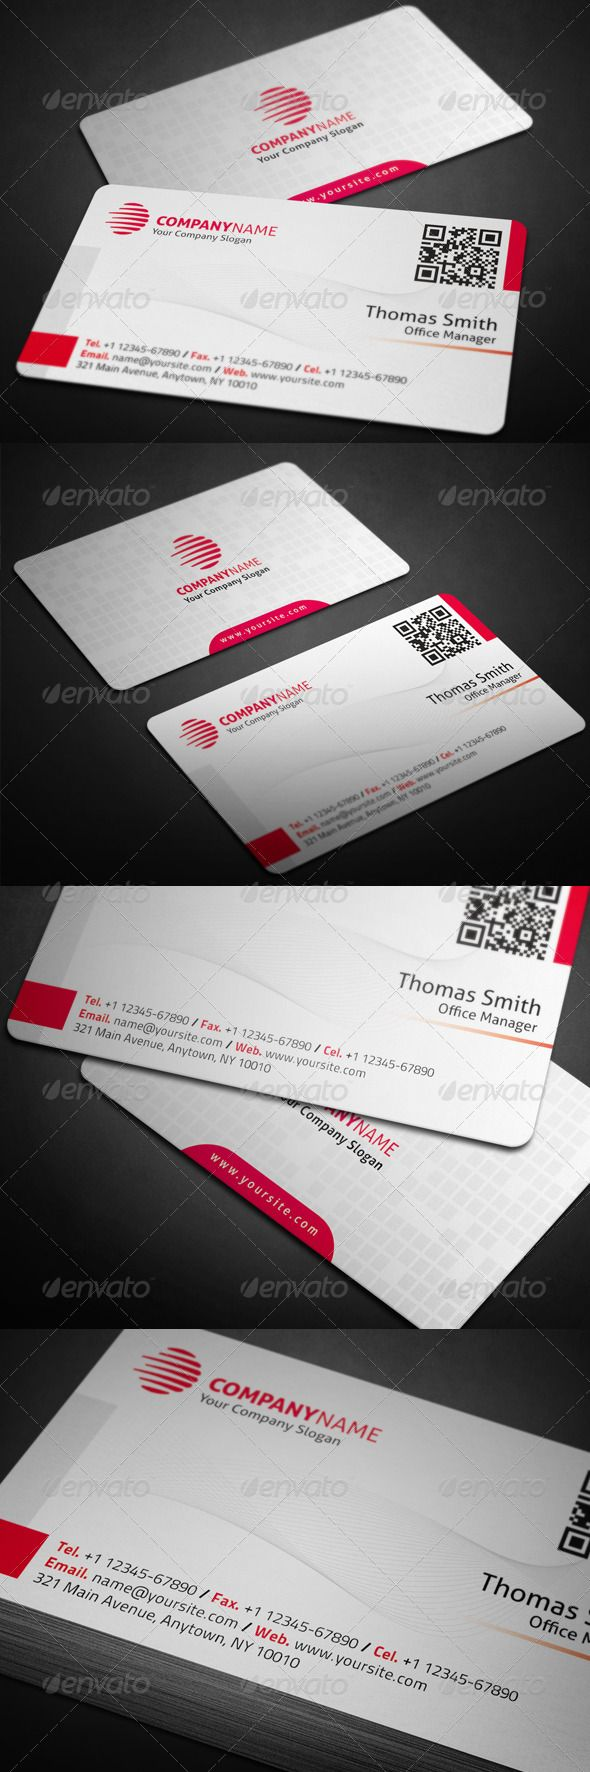 The 36 best work business cards images on pinterest business corporate business card reheart Images